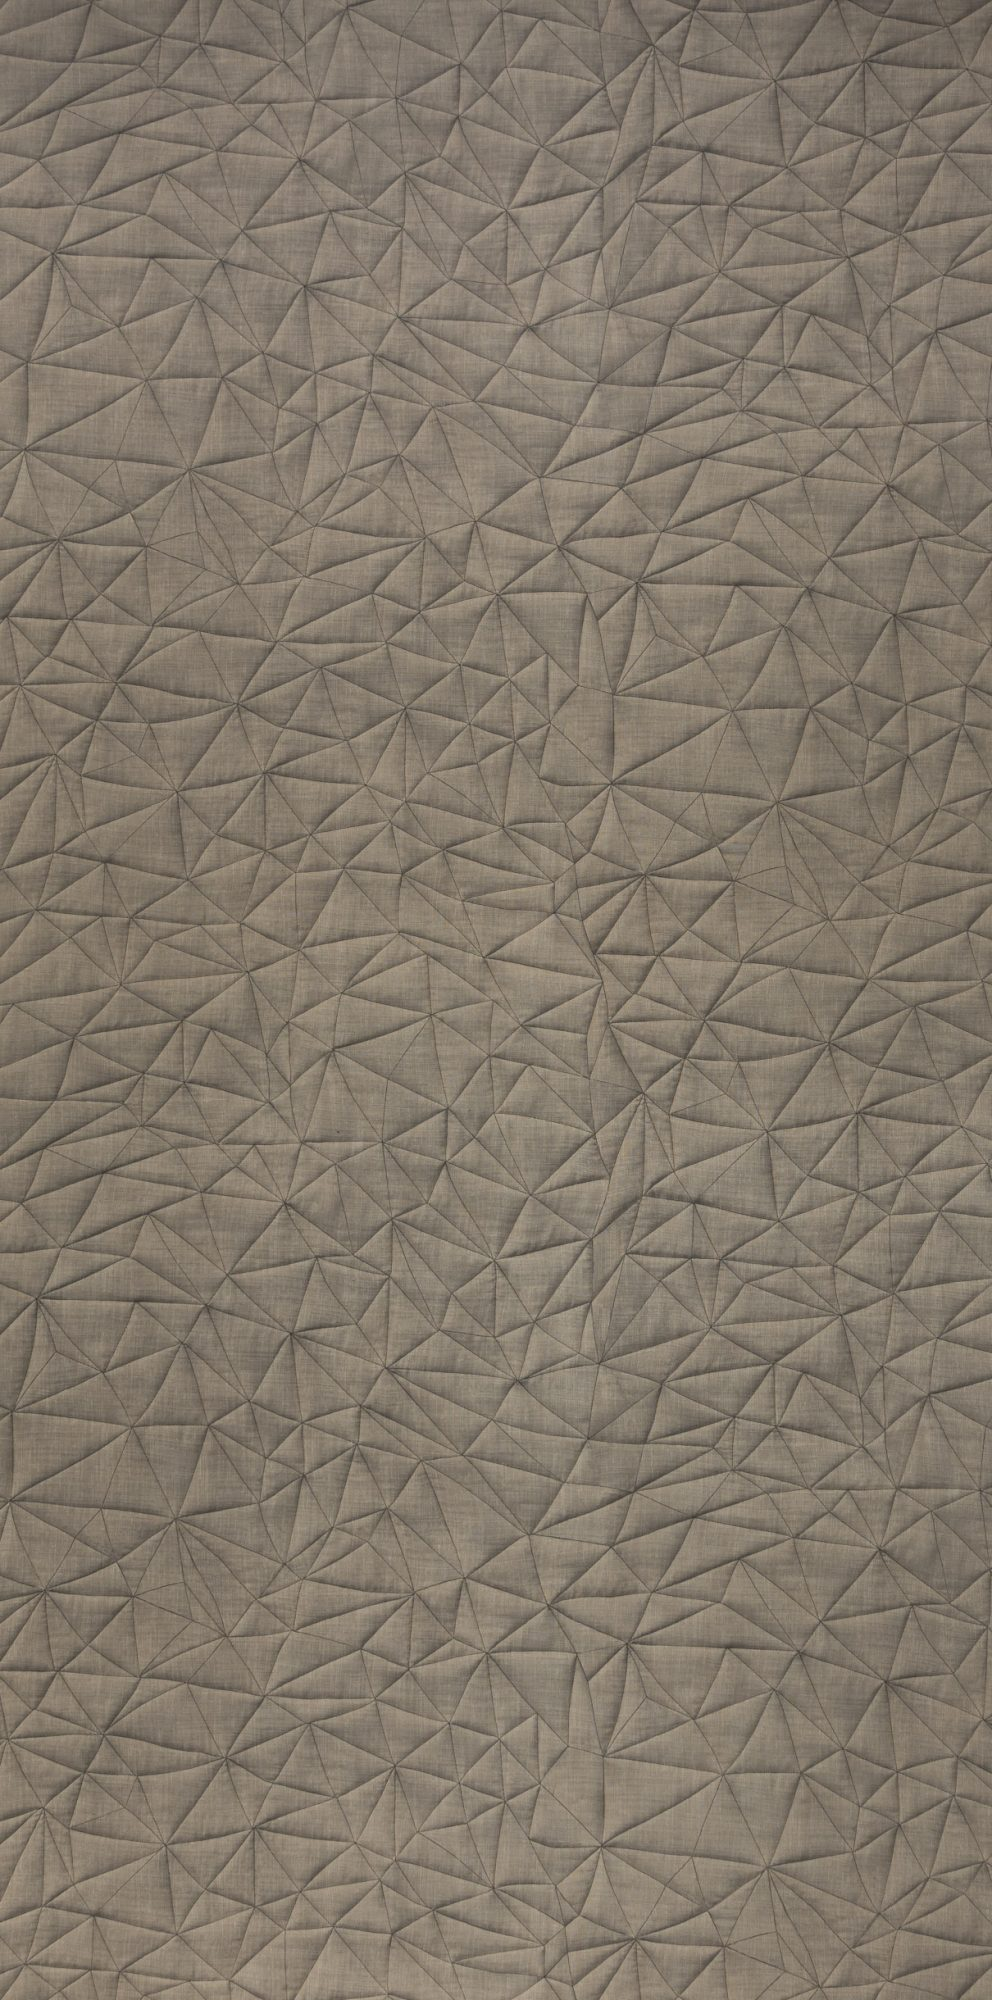 DecoLegno - HPL Specials - Textile/Brown Cotton 2440x1220mm